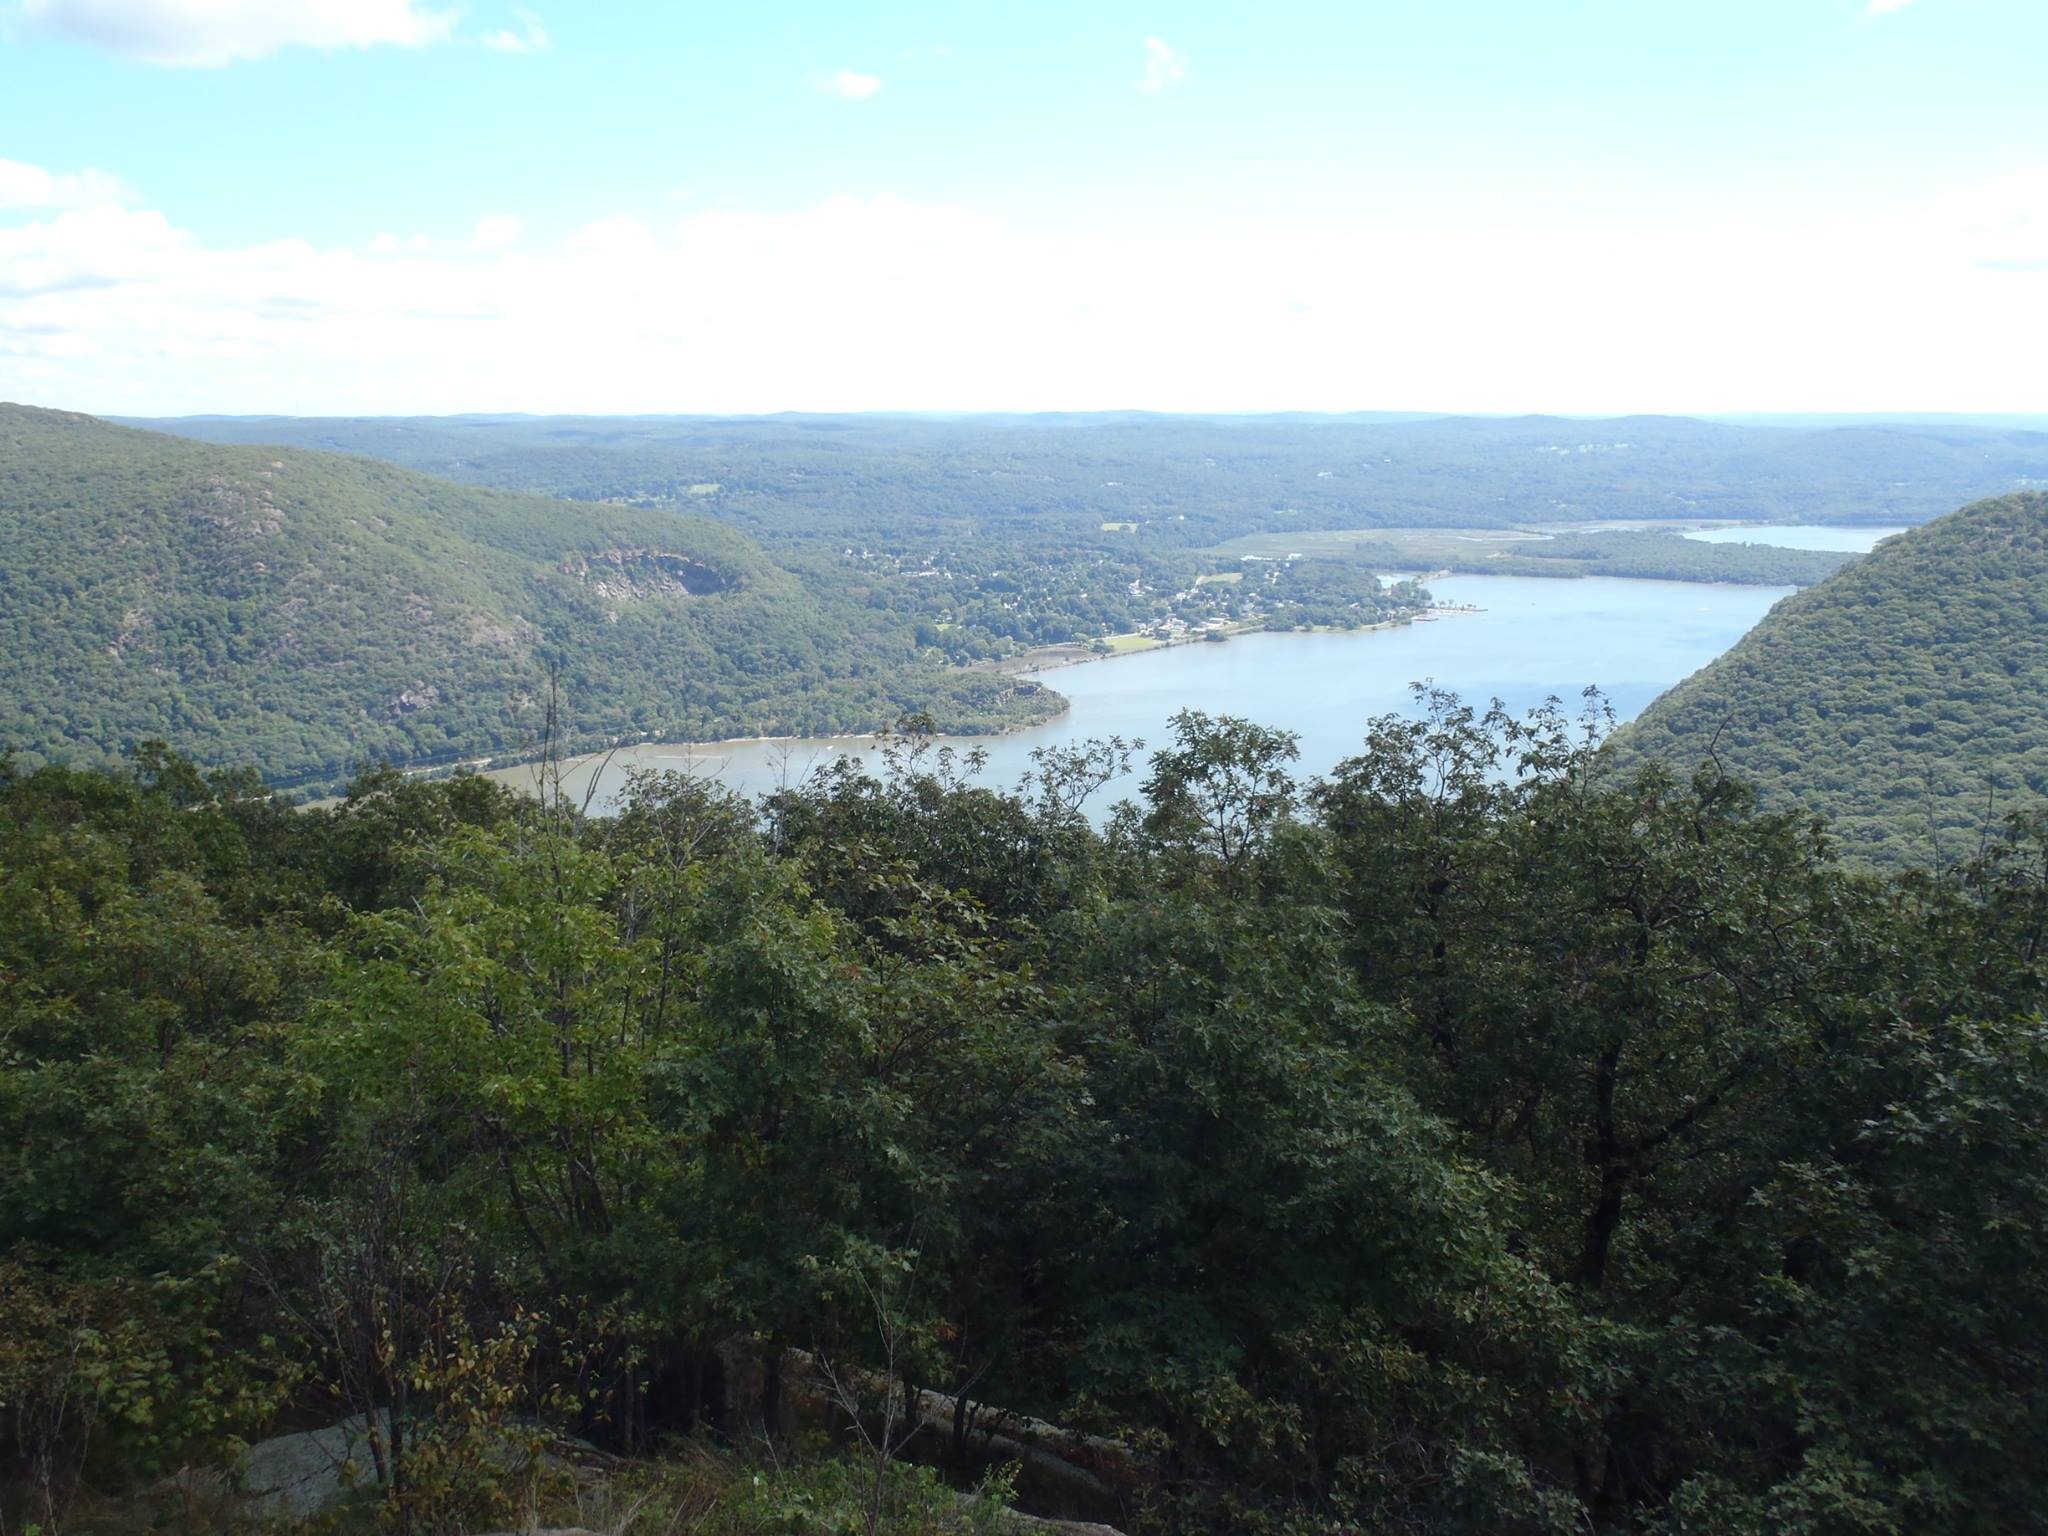 storm king mountain - highlands trail - 2015 fb pic.jpg